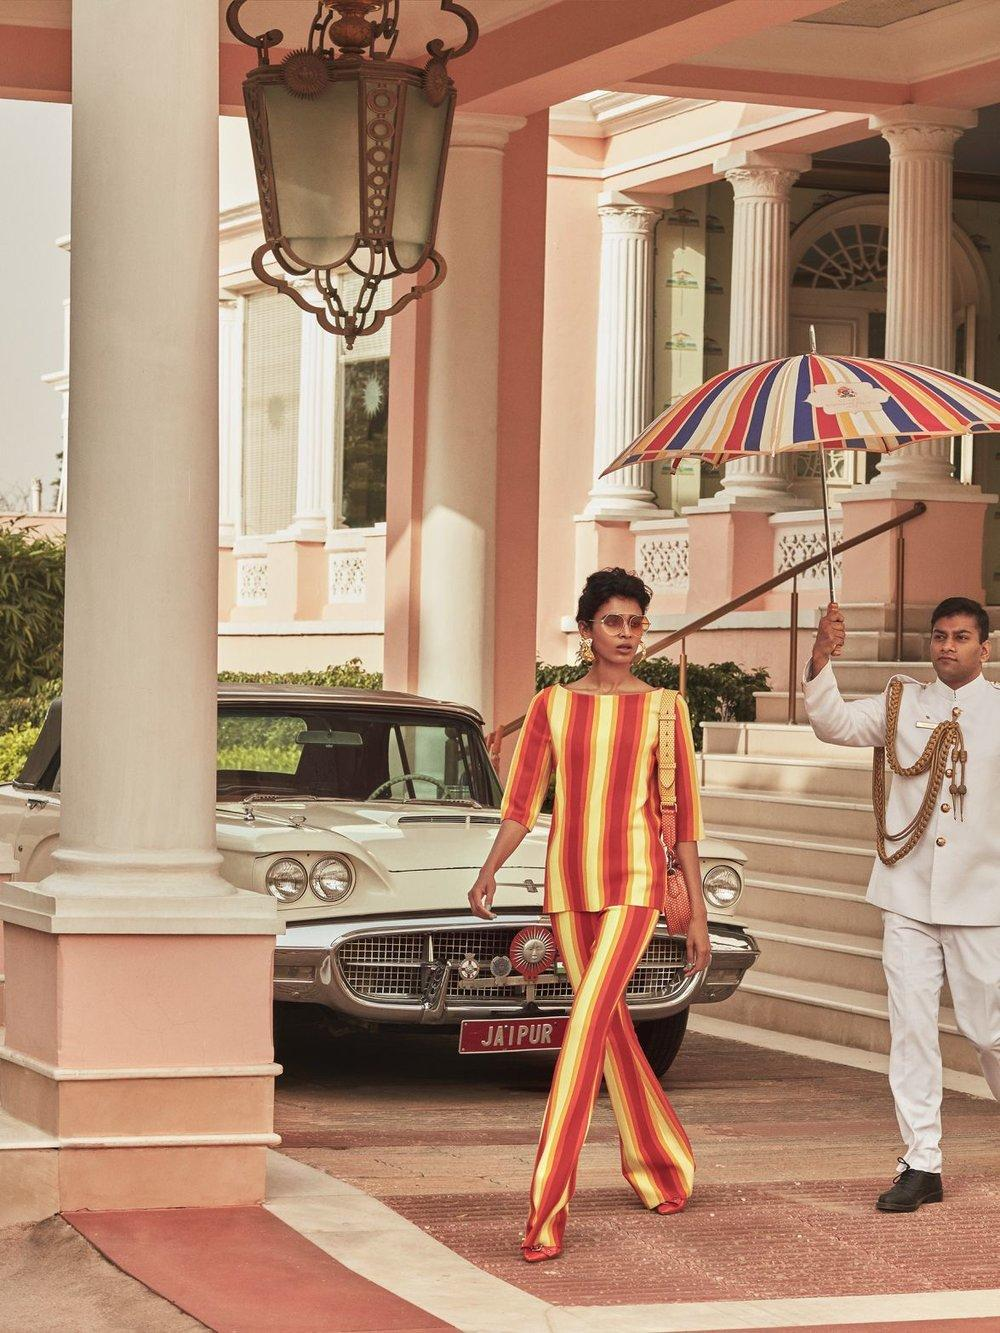 Saffron Vadher & Radhika Nair lensed by Greg Swales for Vogue India ...